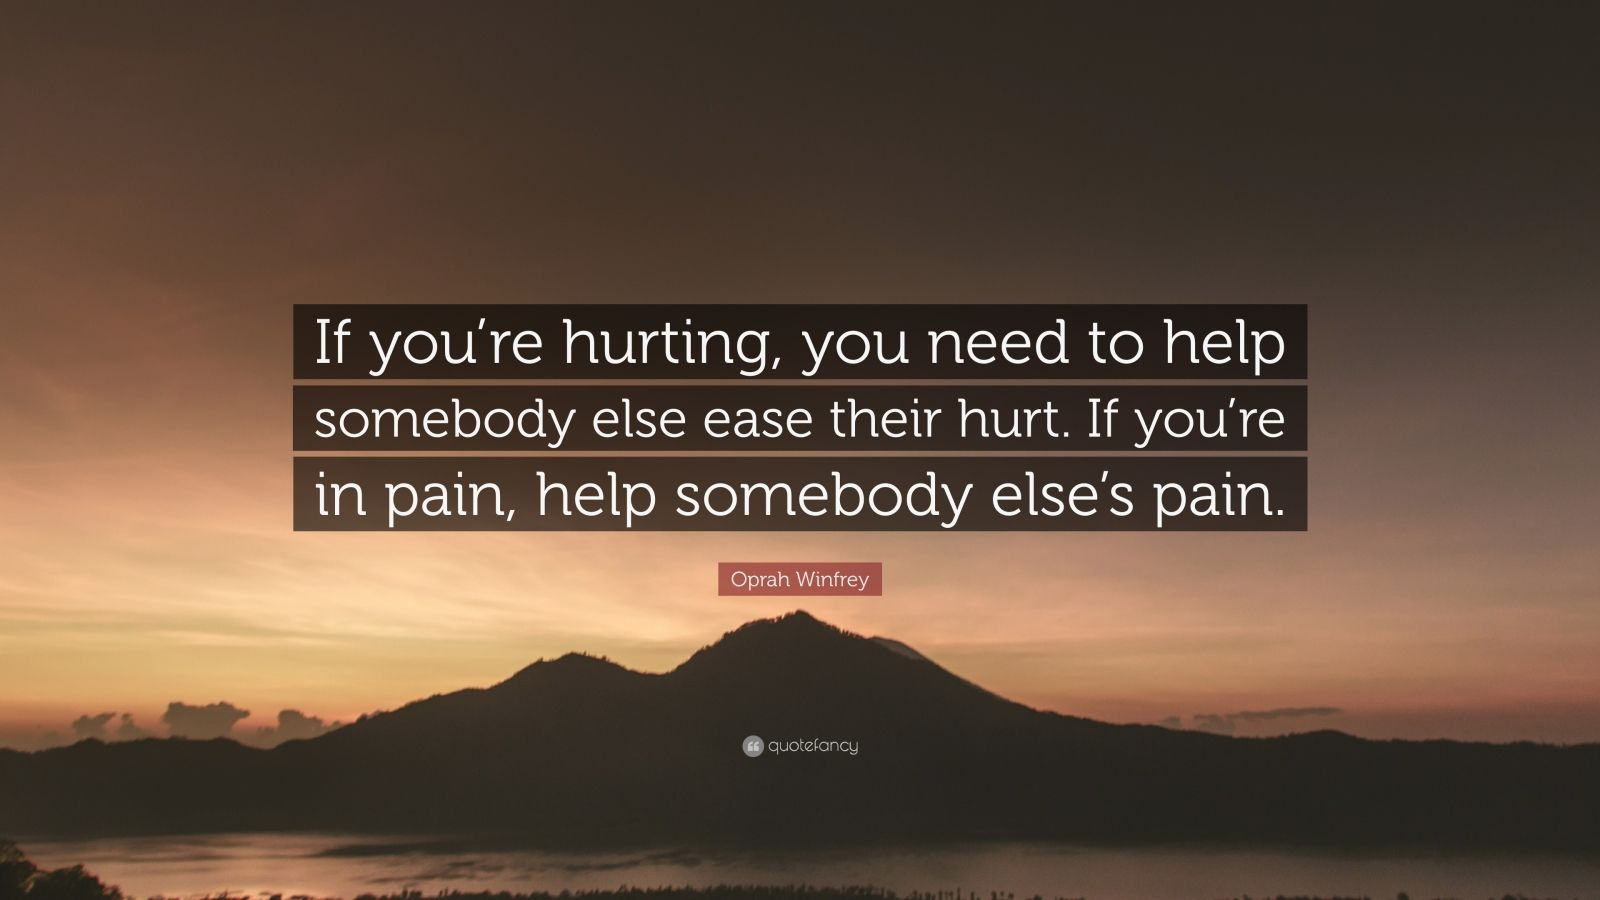 """Oprah Winfrey Quote: """"If you're hurting, you need to help somebody else ease their hurt. If you're in pain, help somebody else's pain."""""""